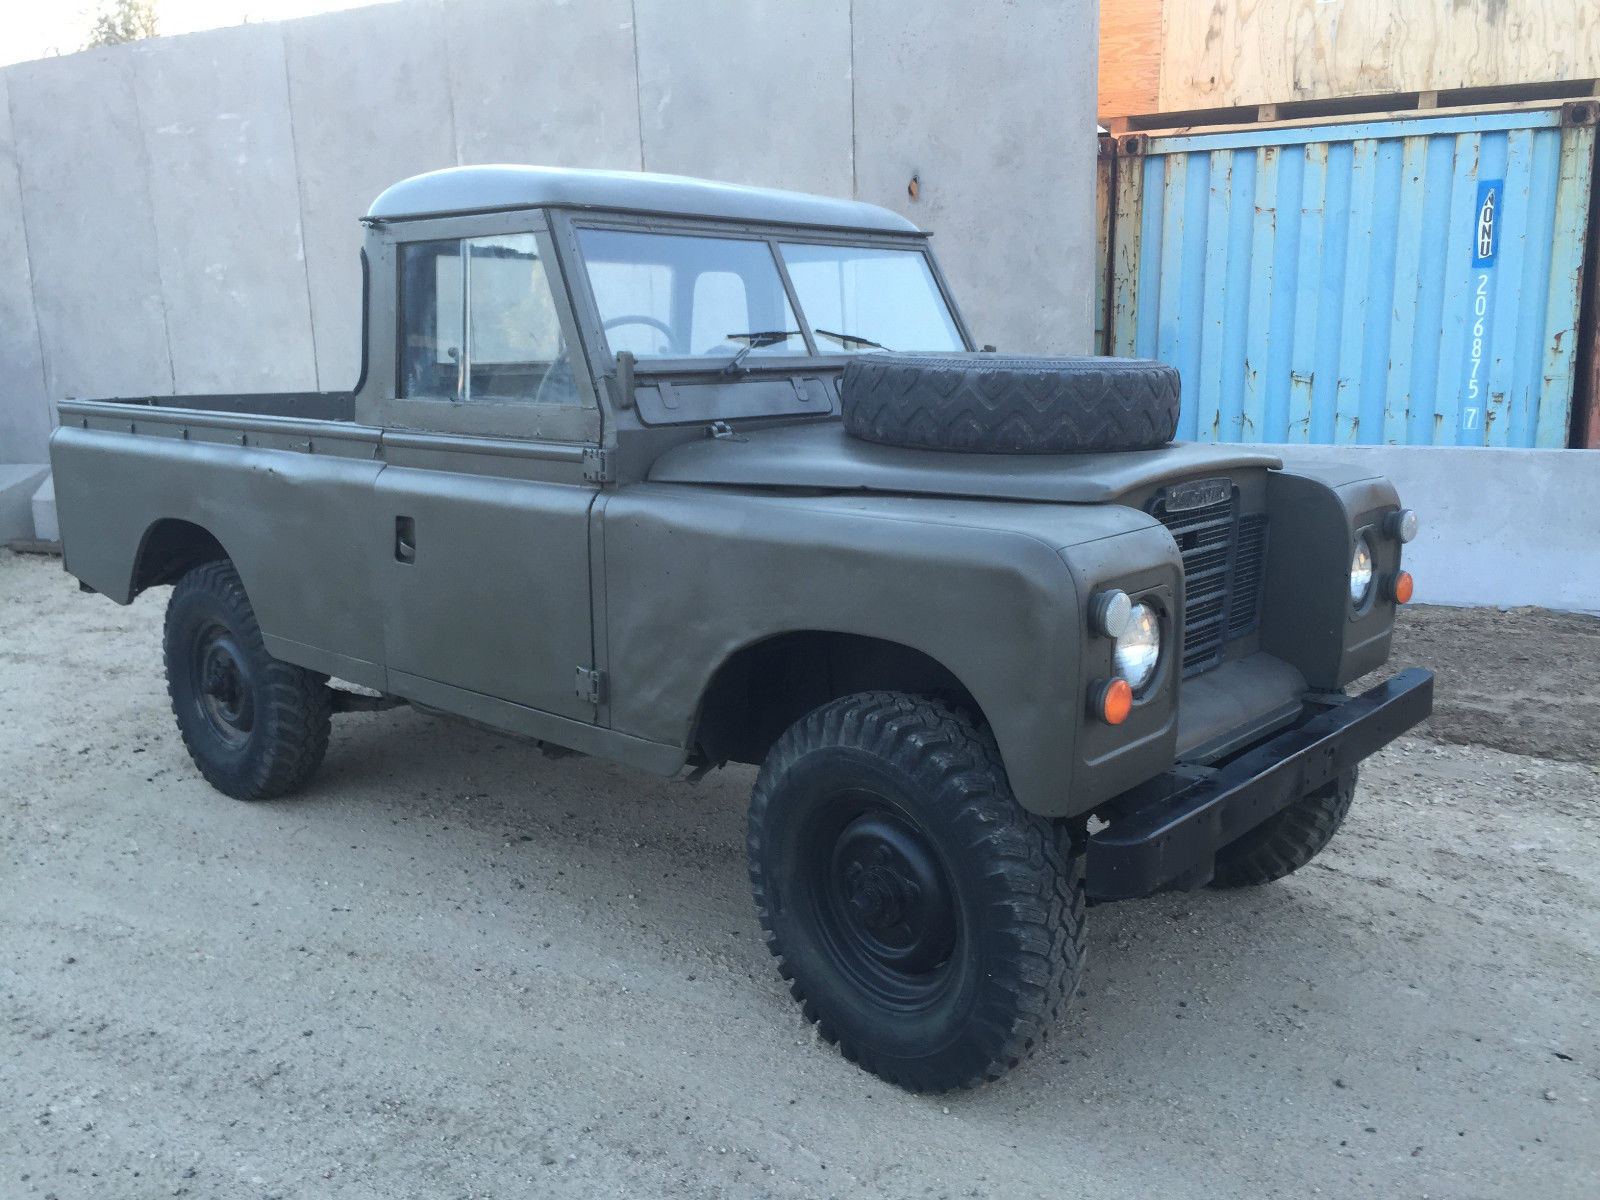 1973 land rover 109 pick up truck  rare  for sale in santa